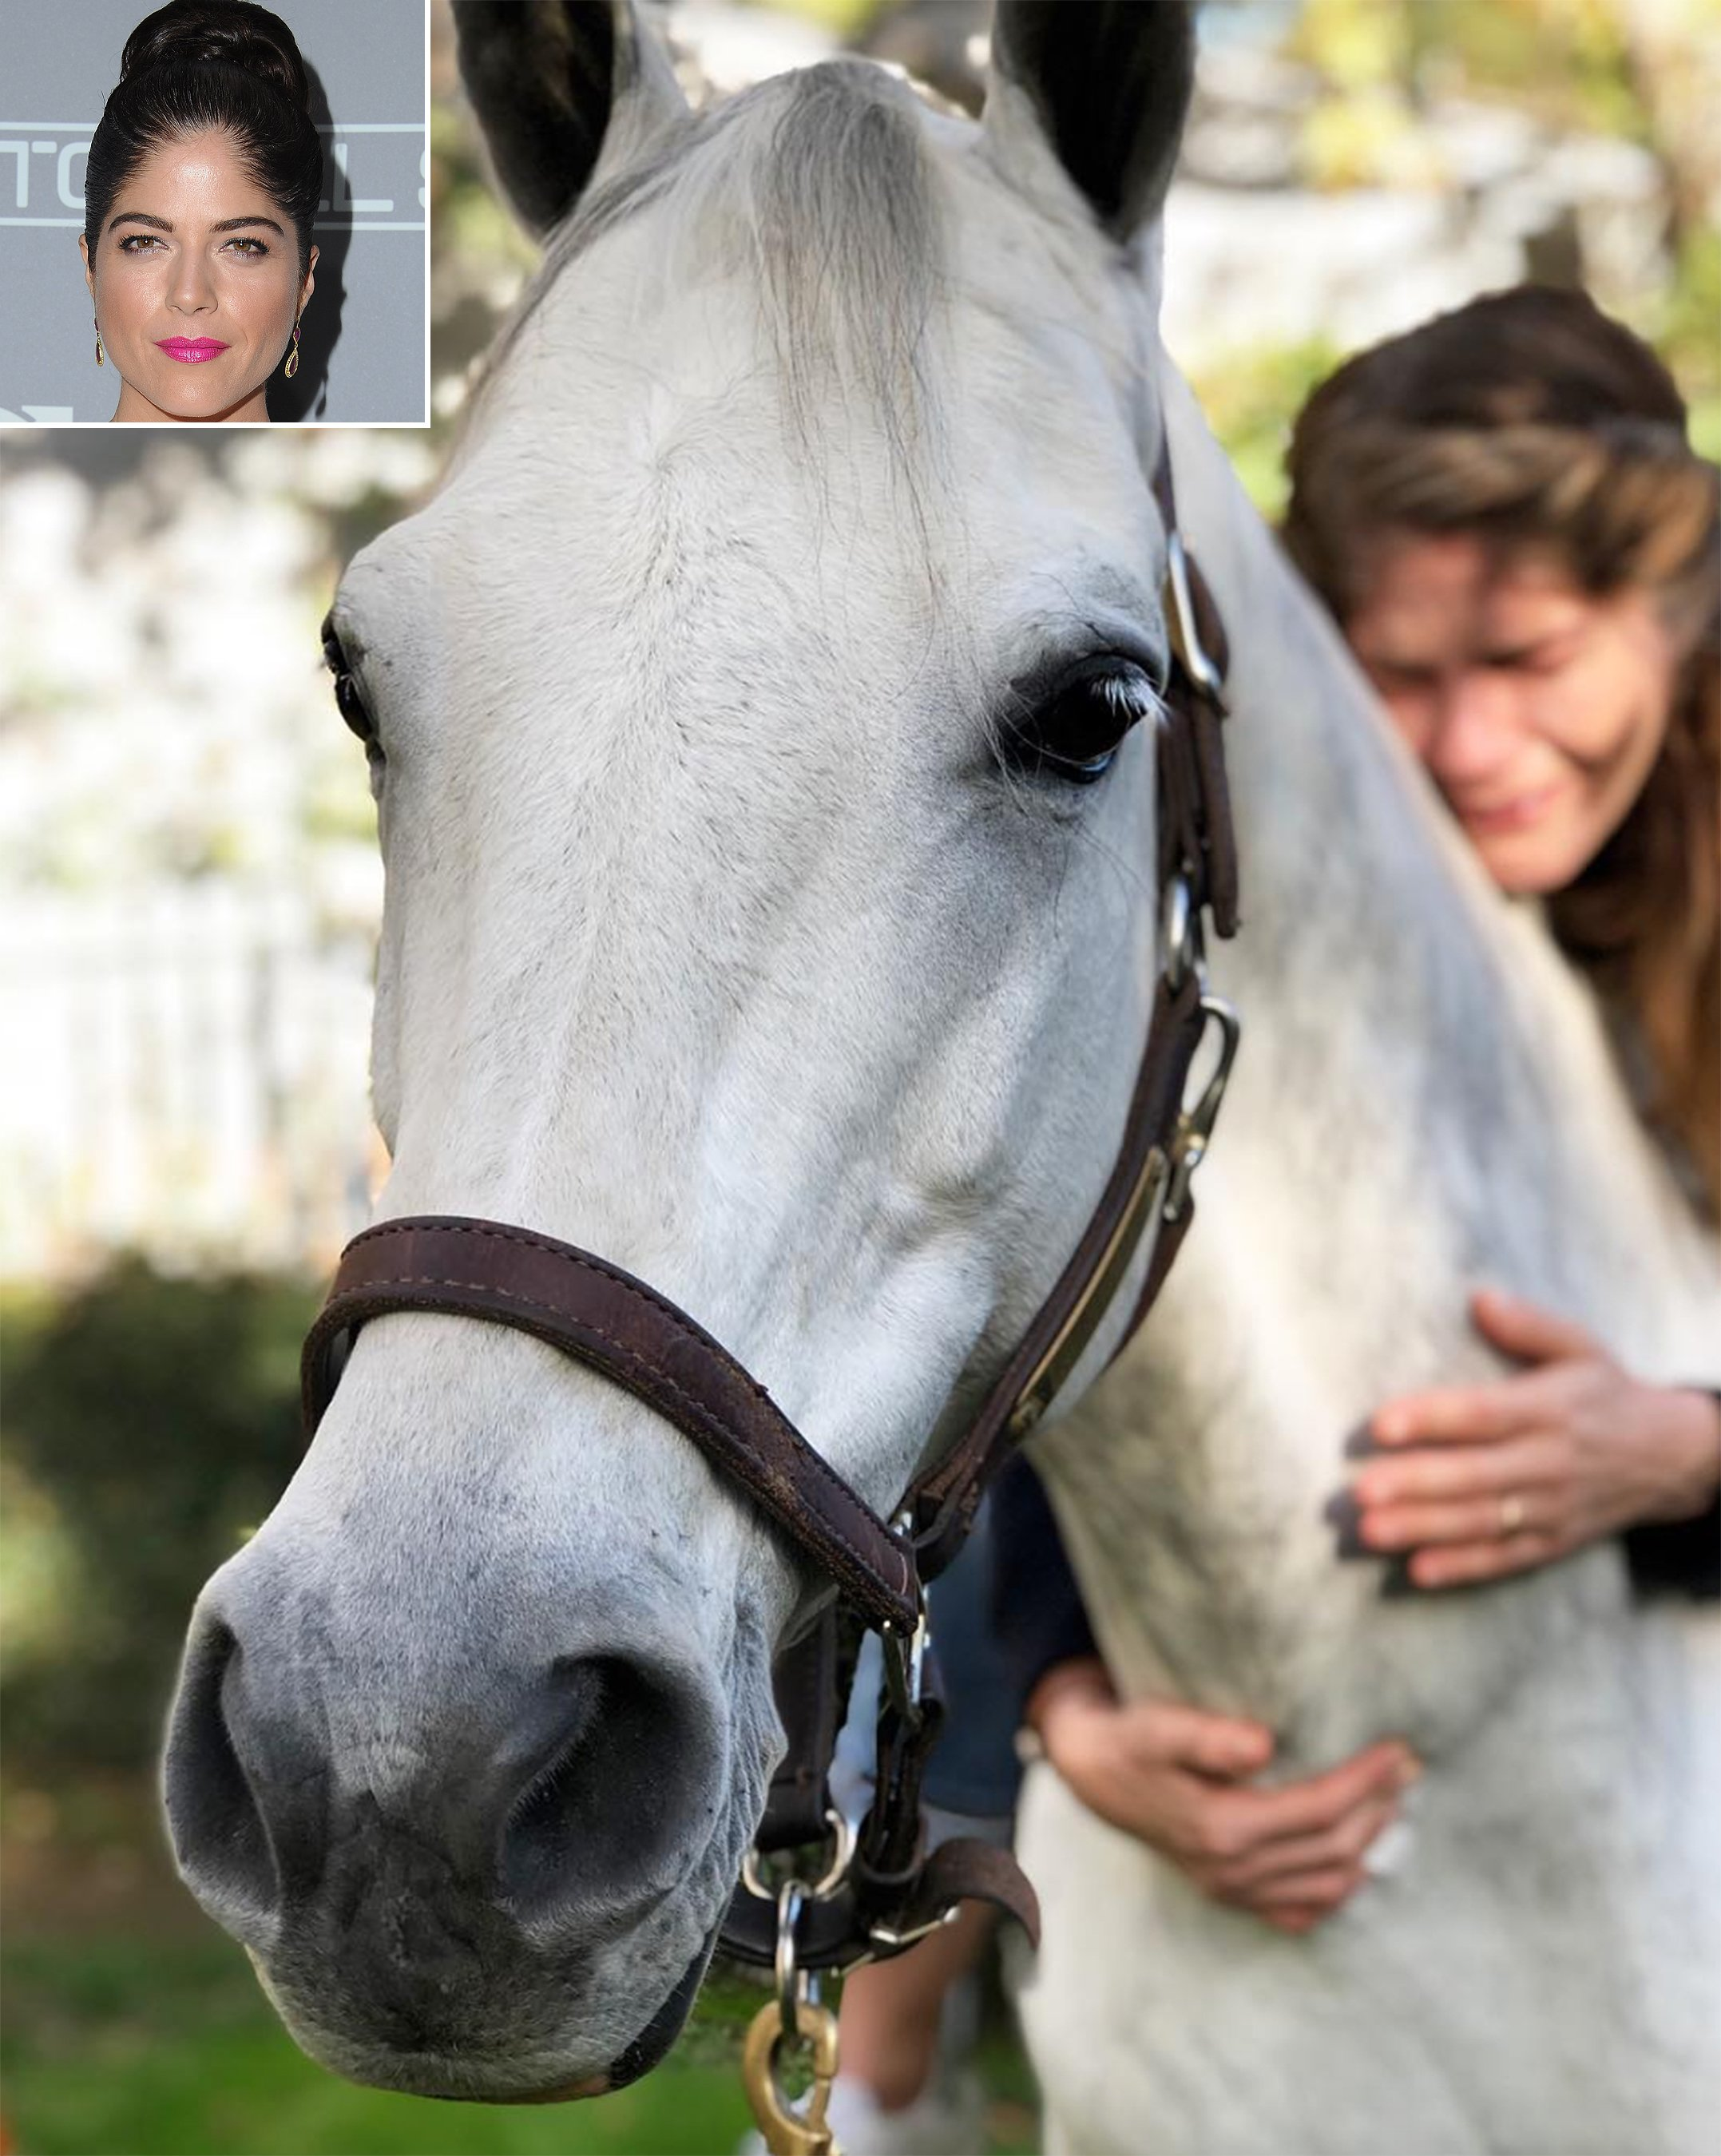 Selma Blair Bursts Into Tears as She Sees Her Horse Again After Not Being Able to Ride Due to Her MS